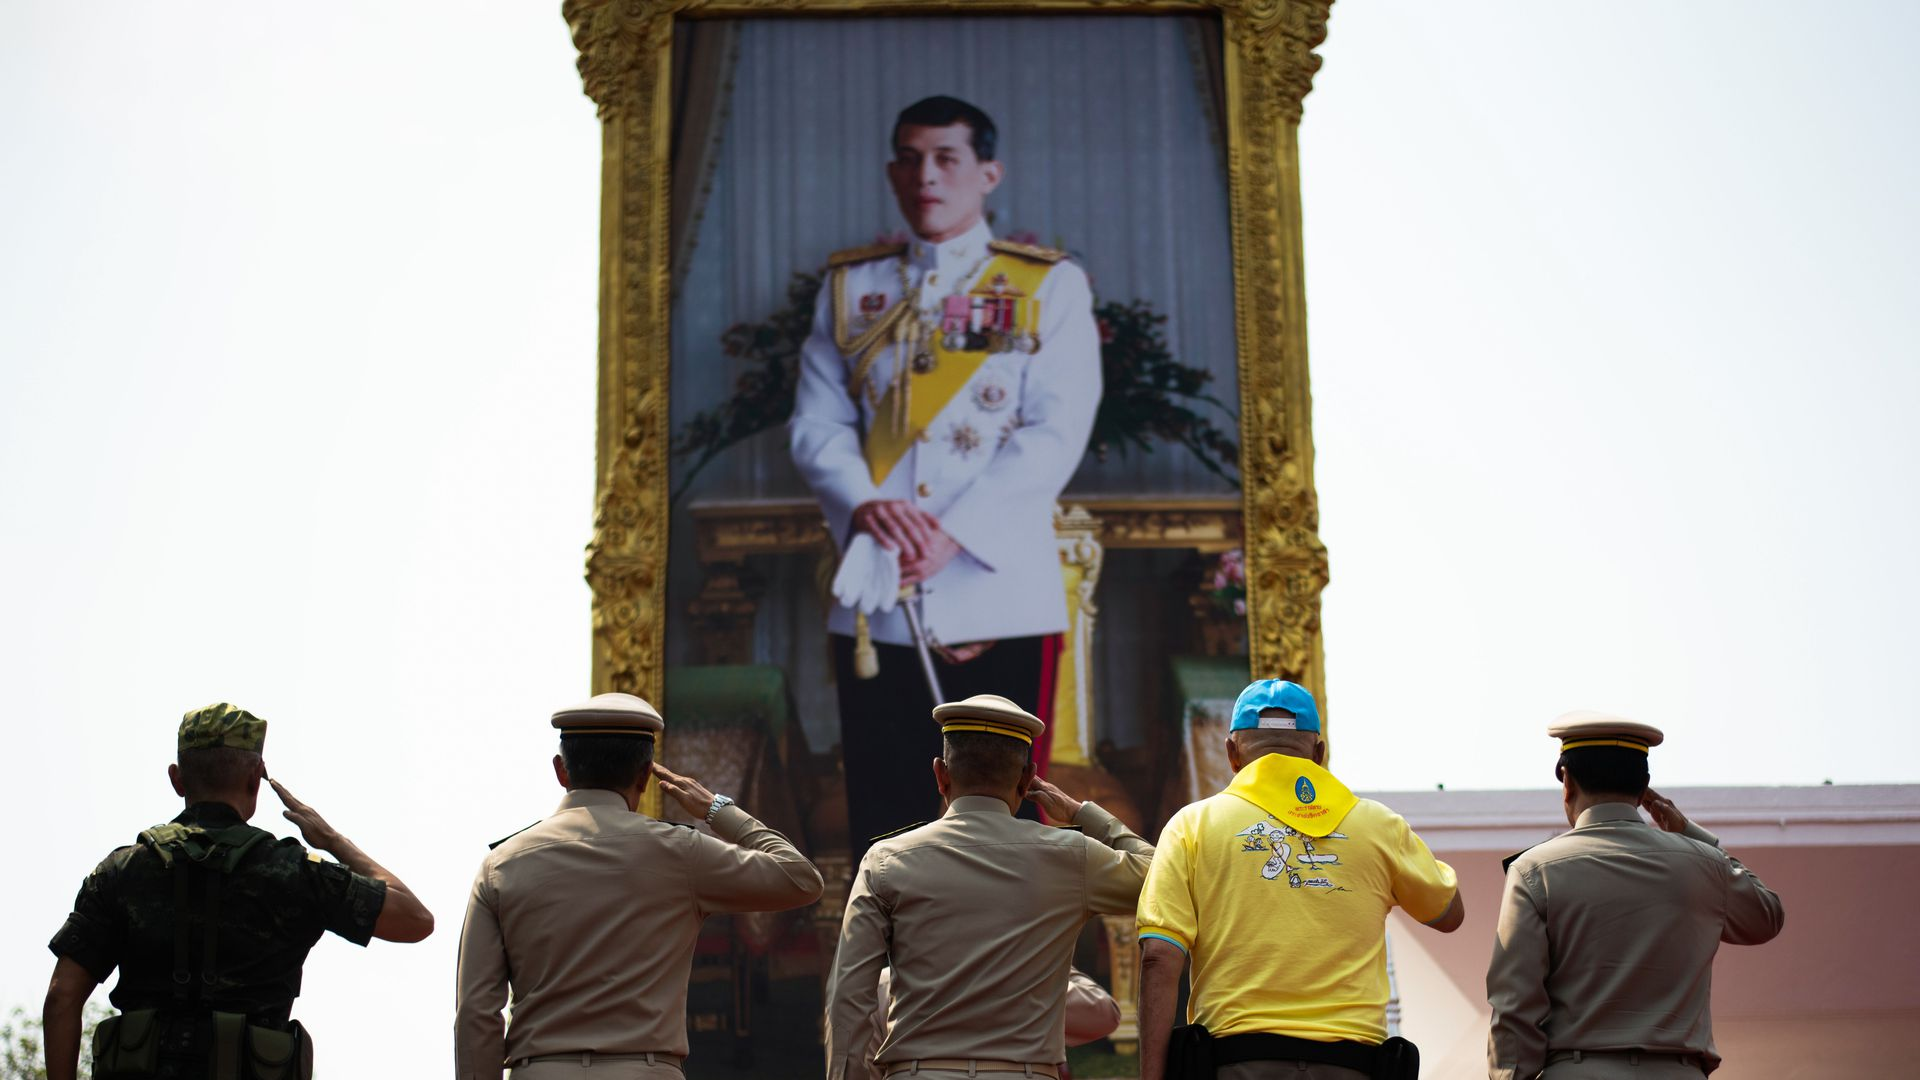 Thai Prime Minister, Royal Thai Army Commander in Chief and others salute a portrait of King Maha Vajiralongkorn